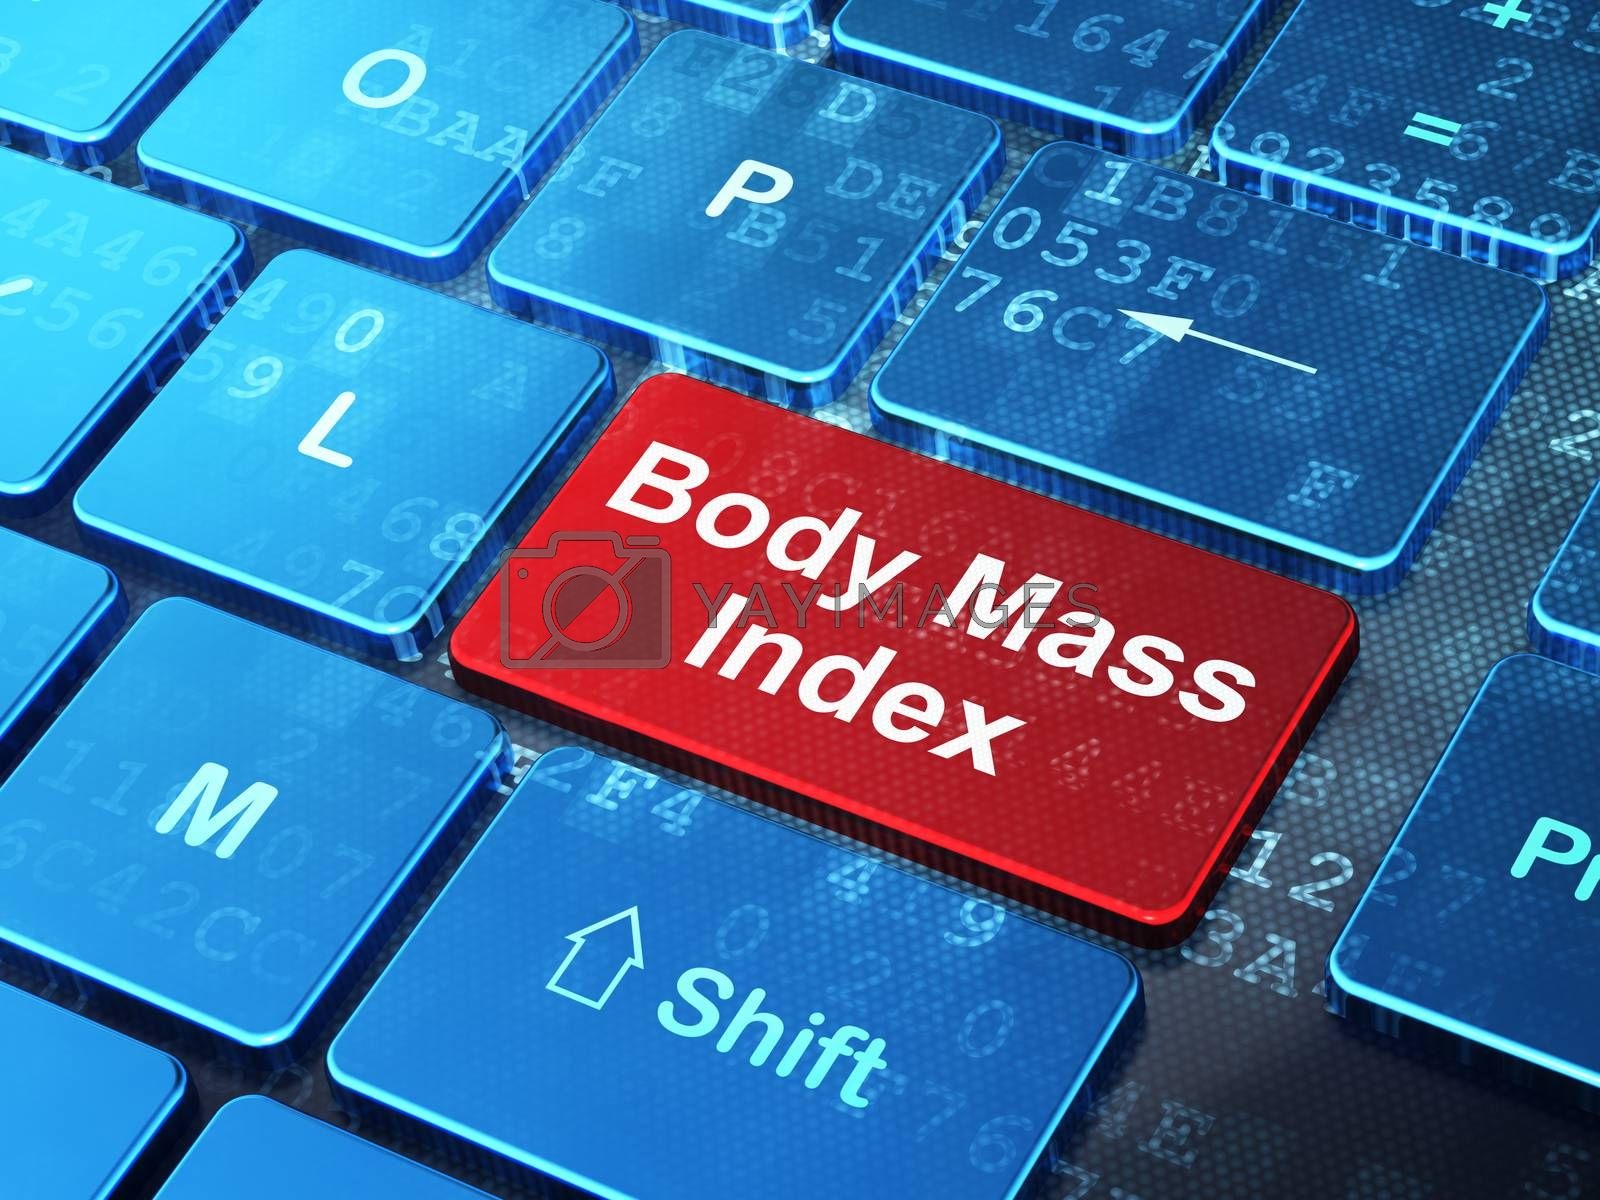 Healthcare concept: Body Mass Index on computer keyboard background by maxkabakov